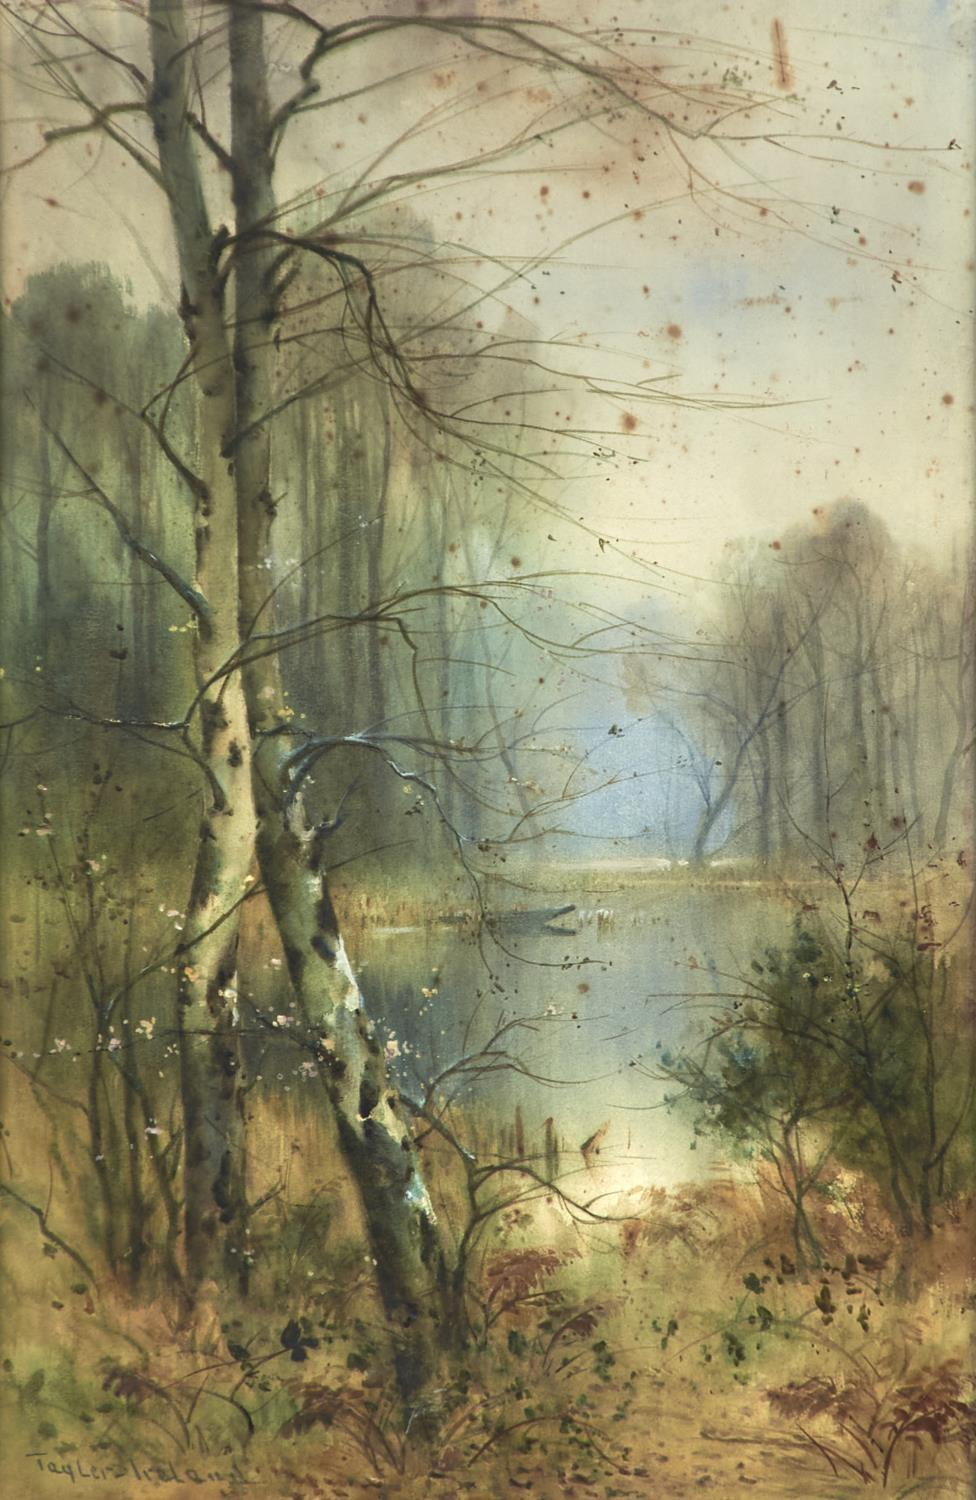 THOMAS TAYLER-IRELAND (1874-1931) - THE BIRCH POOL, SIGNED, WATERCOLOUR, 52 X 34CM Foxing as evident